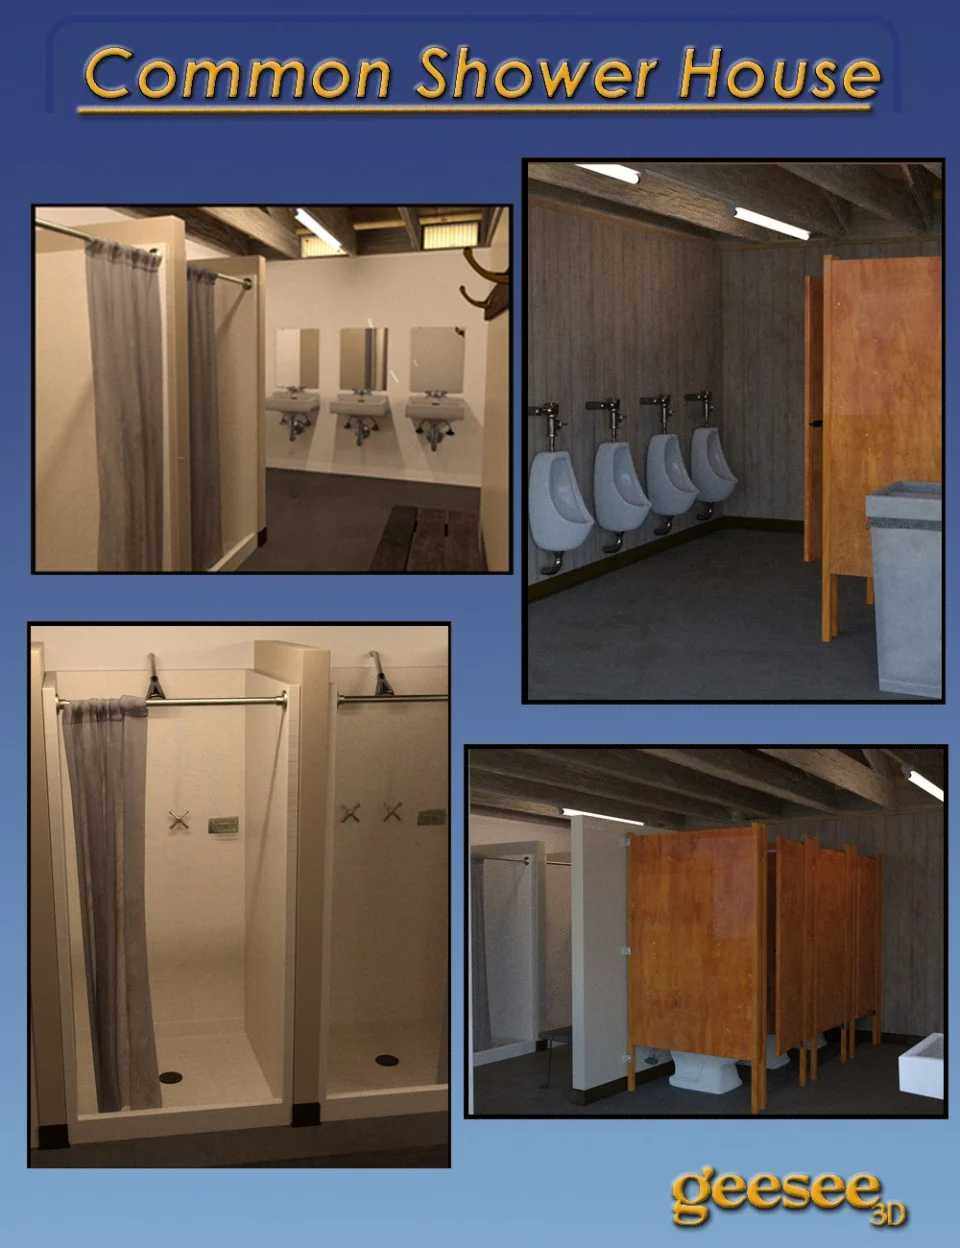 Common Shower House